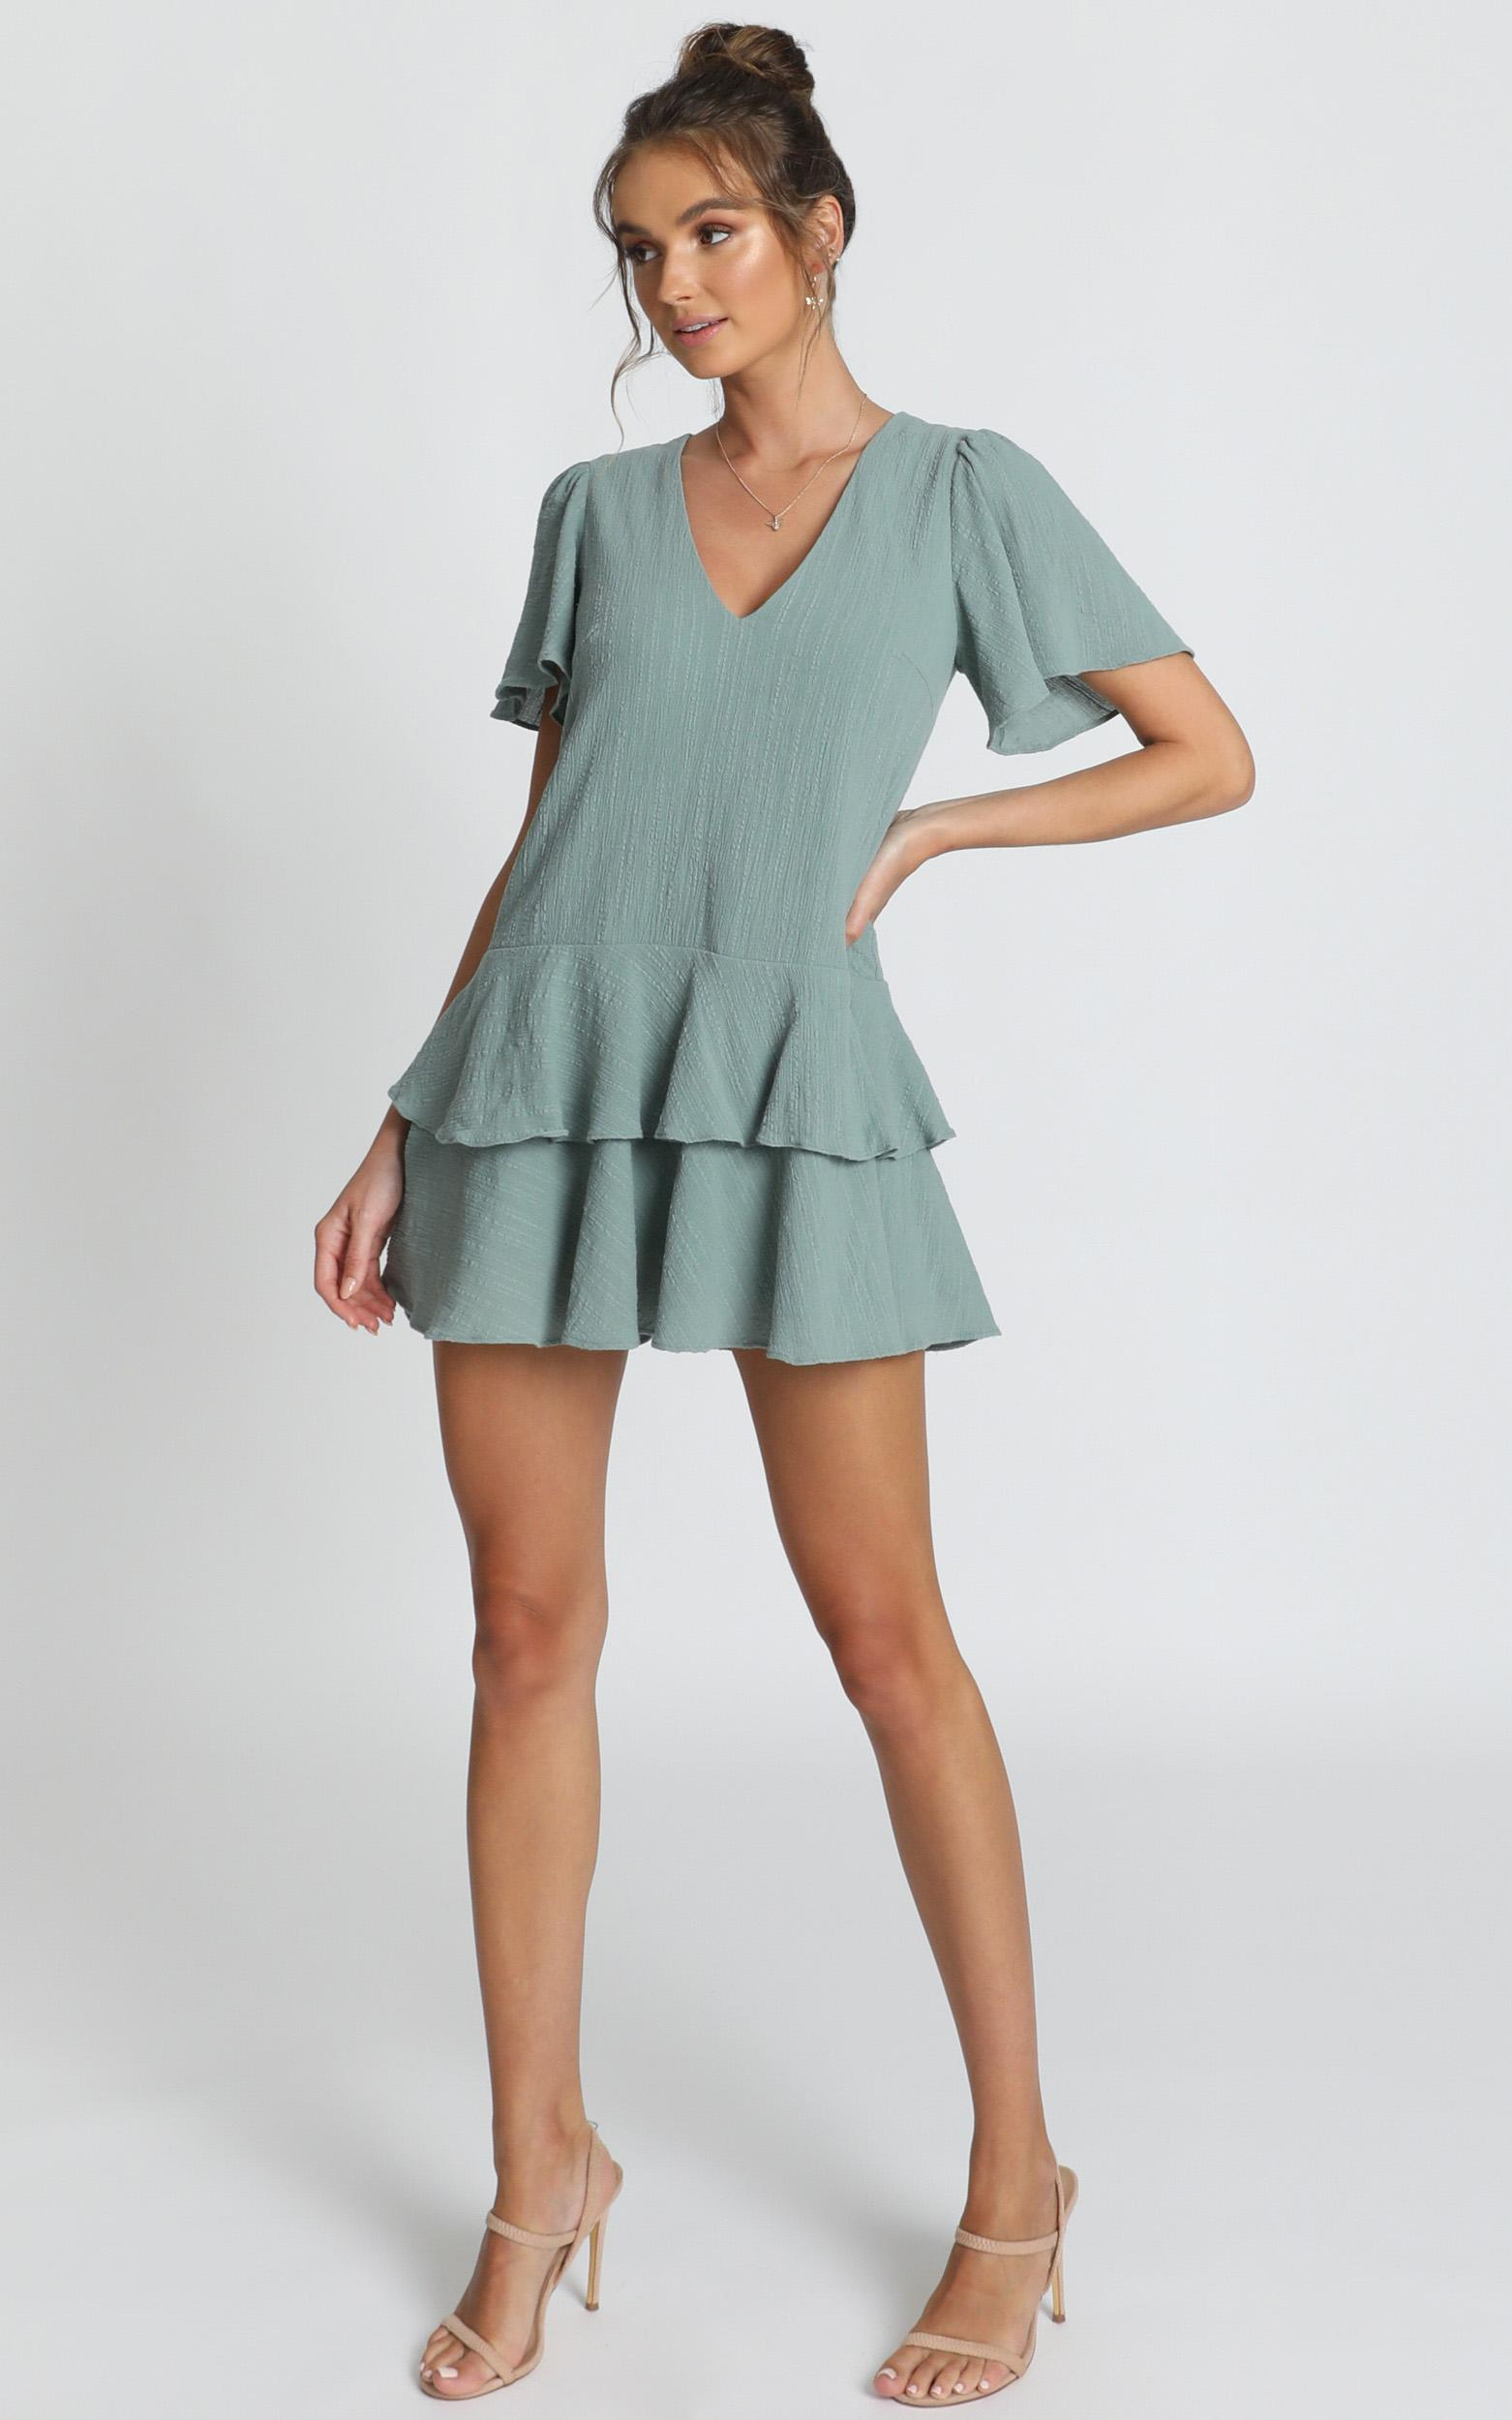 Bahama Baby Dress in sage - 20 (XXXXL), Sage, hi-res image number null